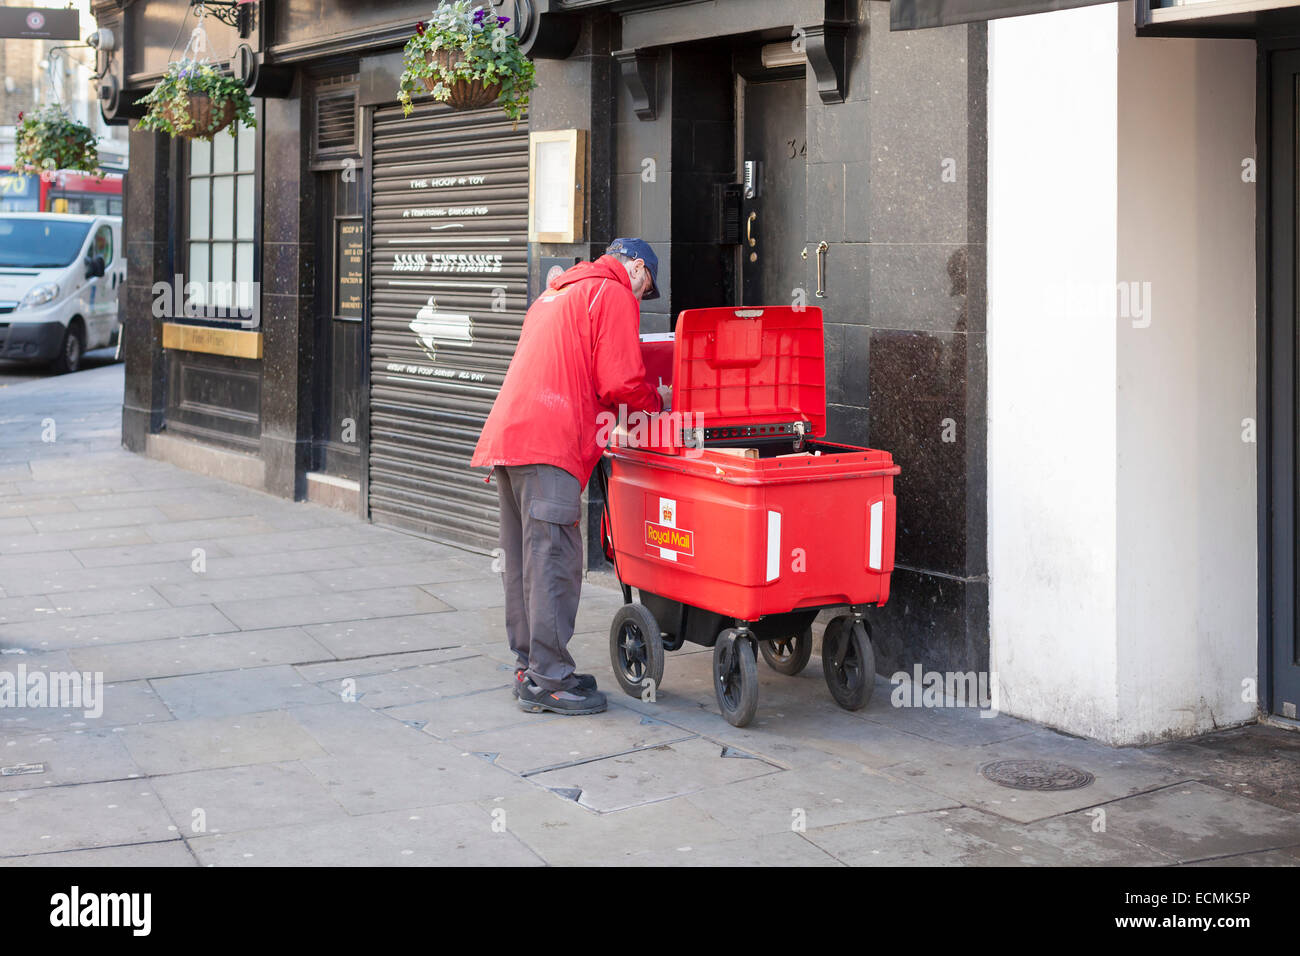 A Royal Mail postman, London, England - Stock Image